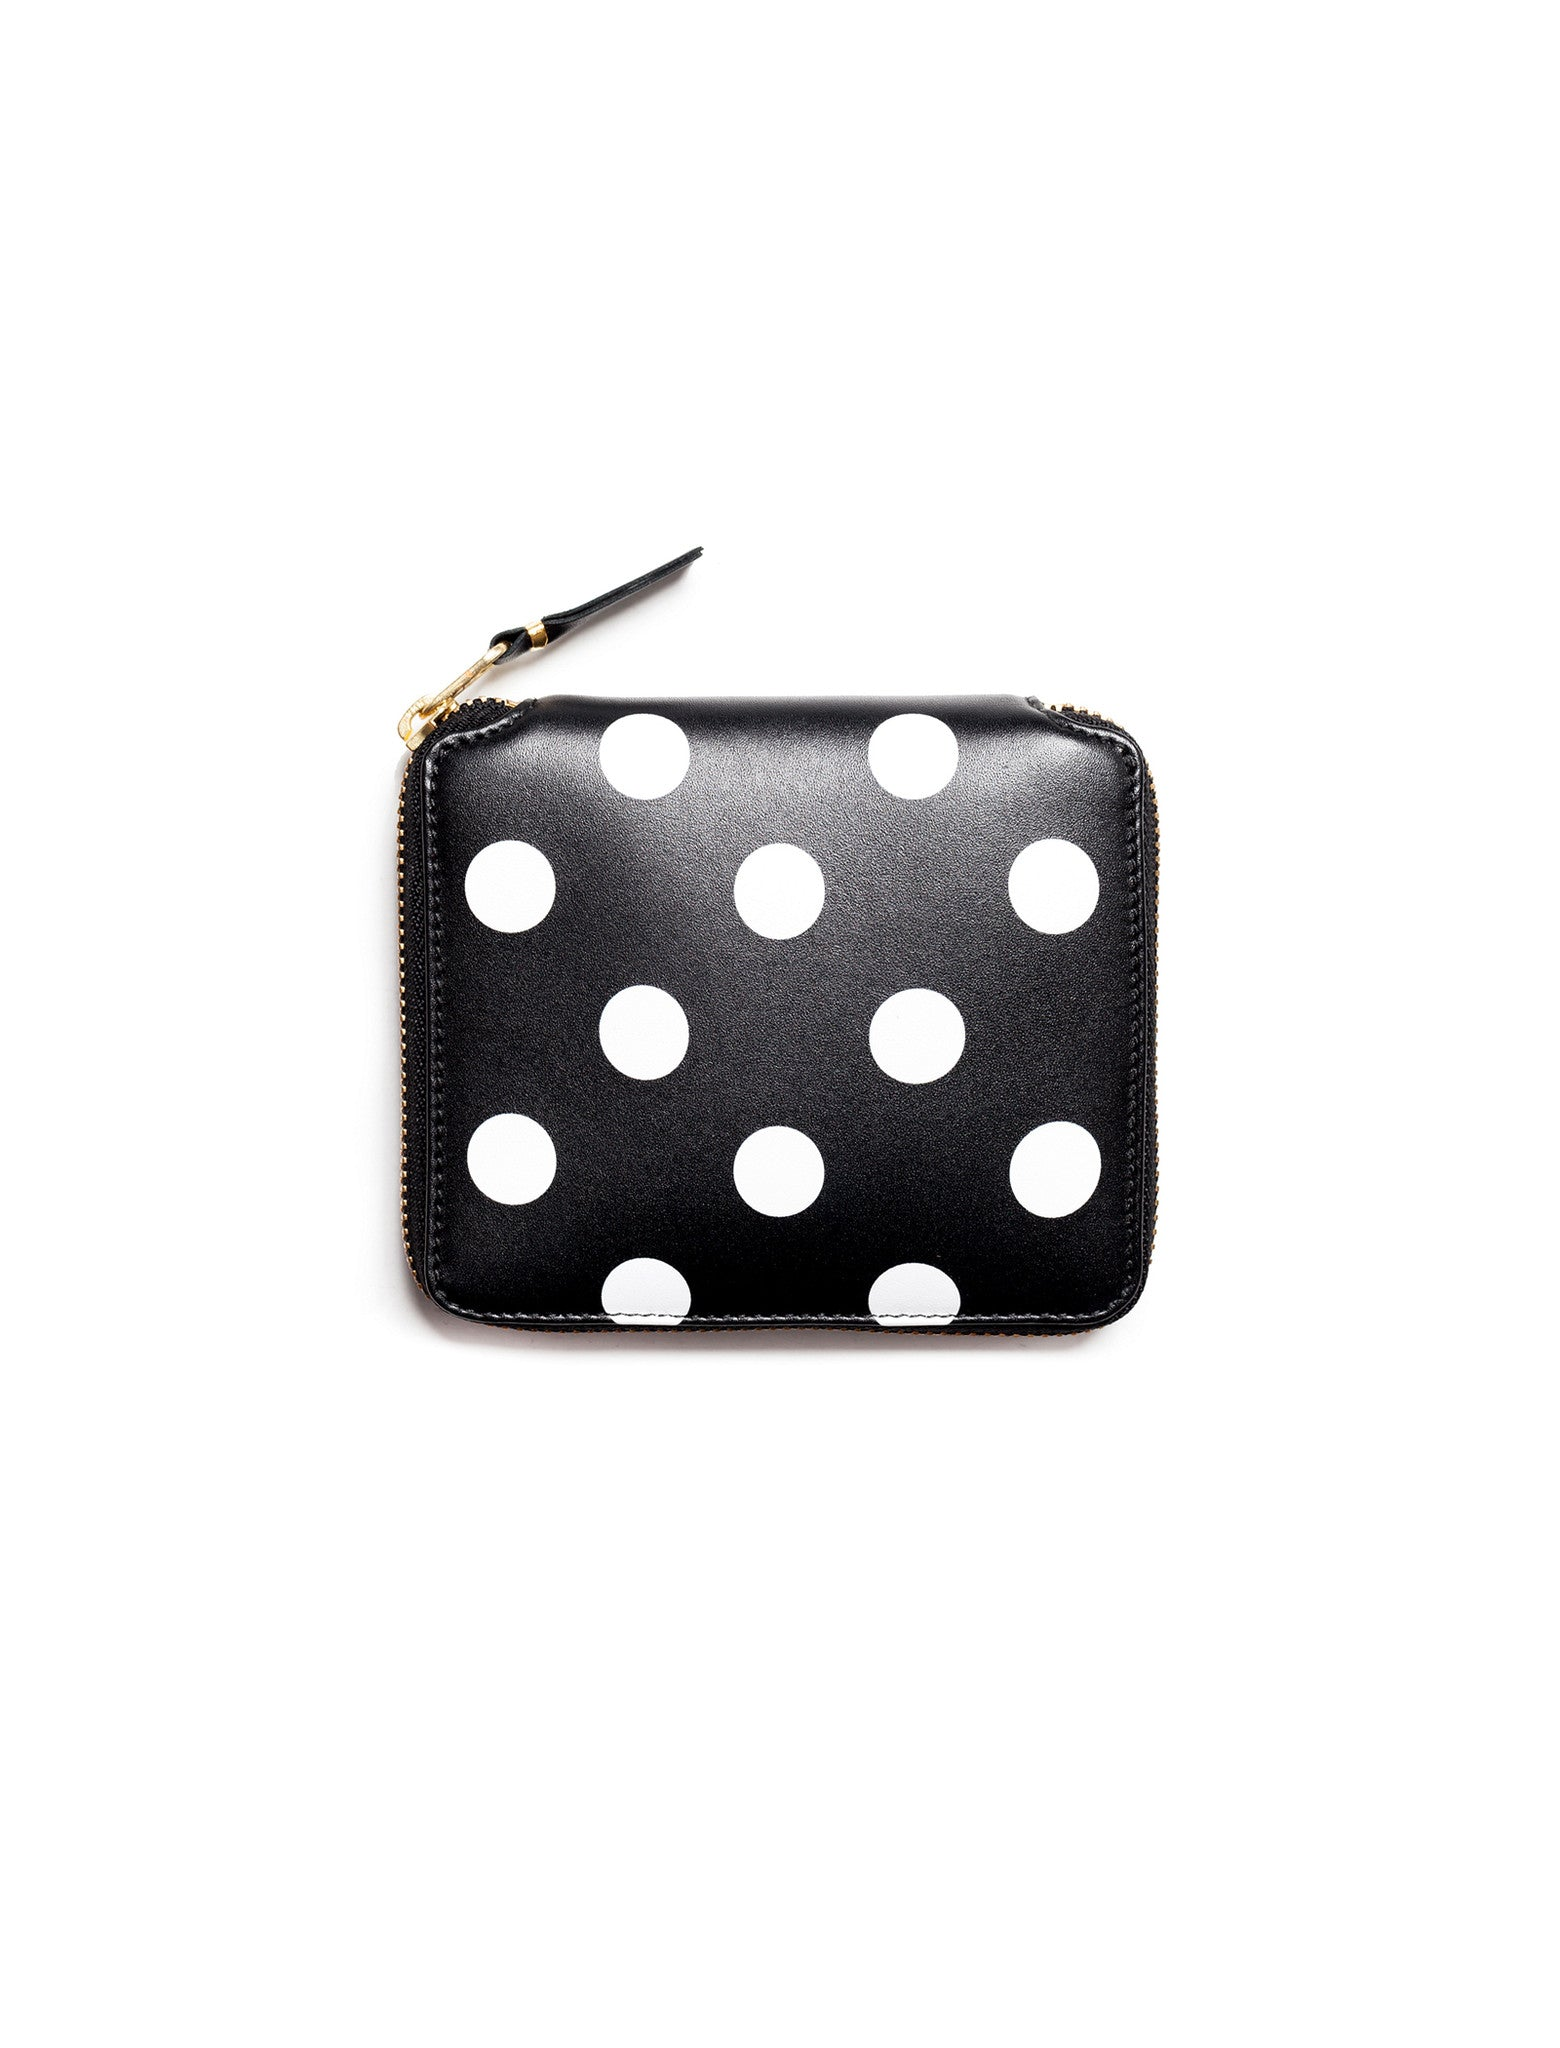 Polka Dots Printed Full Zip Wallet Black - SA2100PD